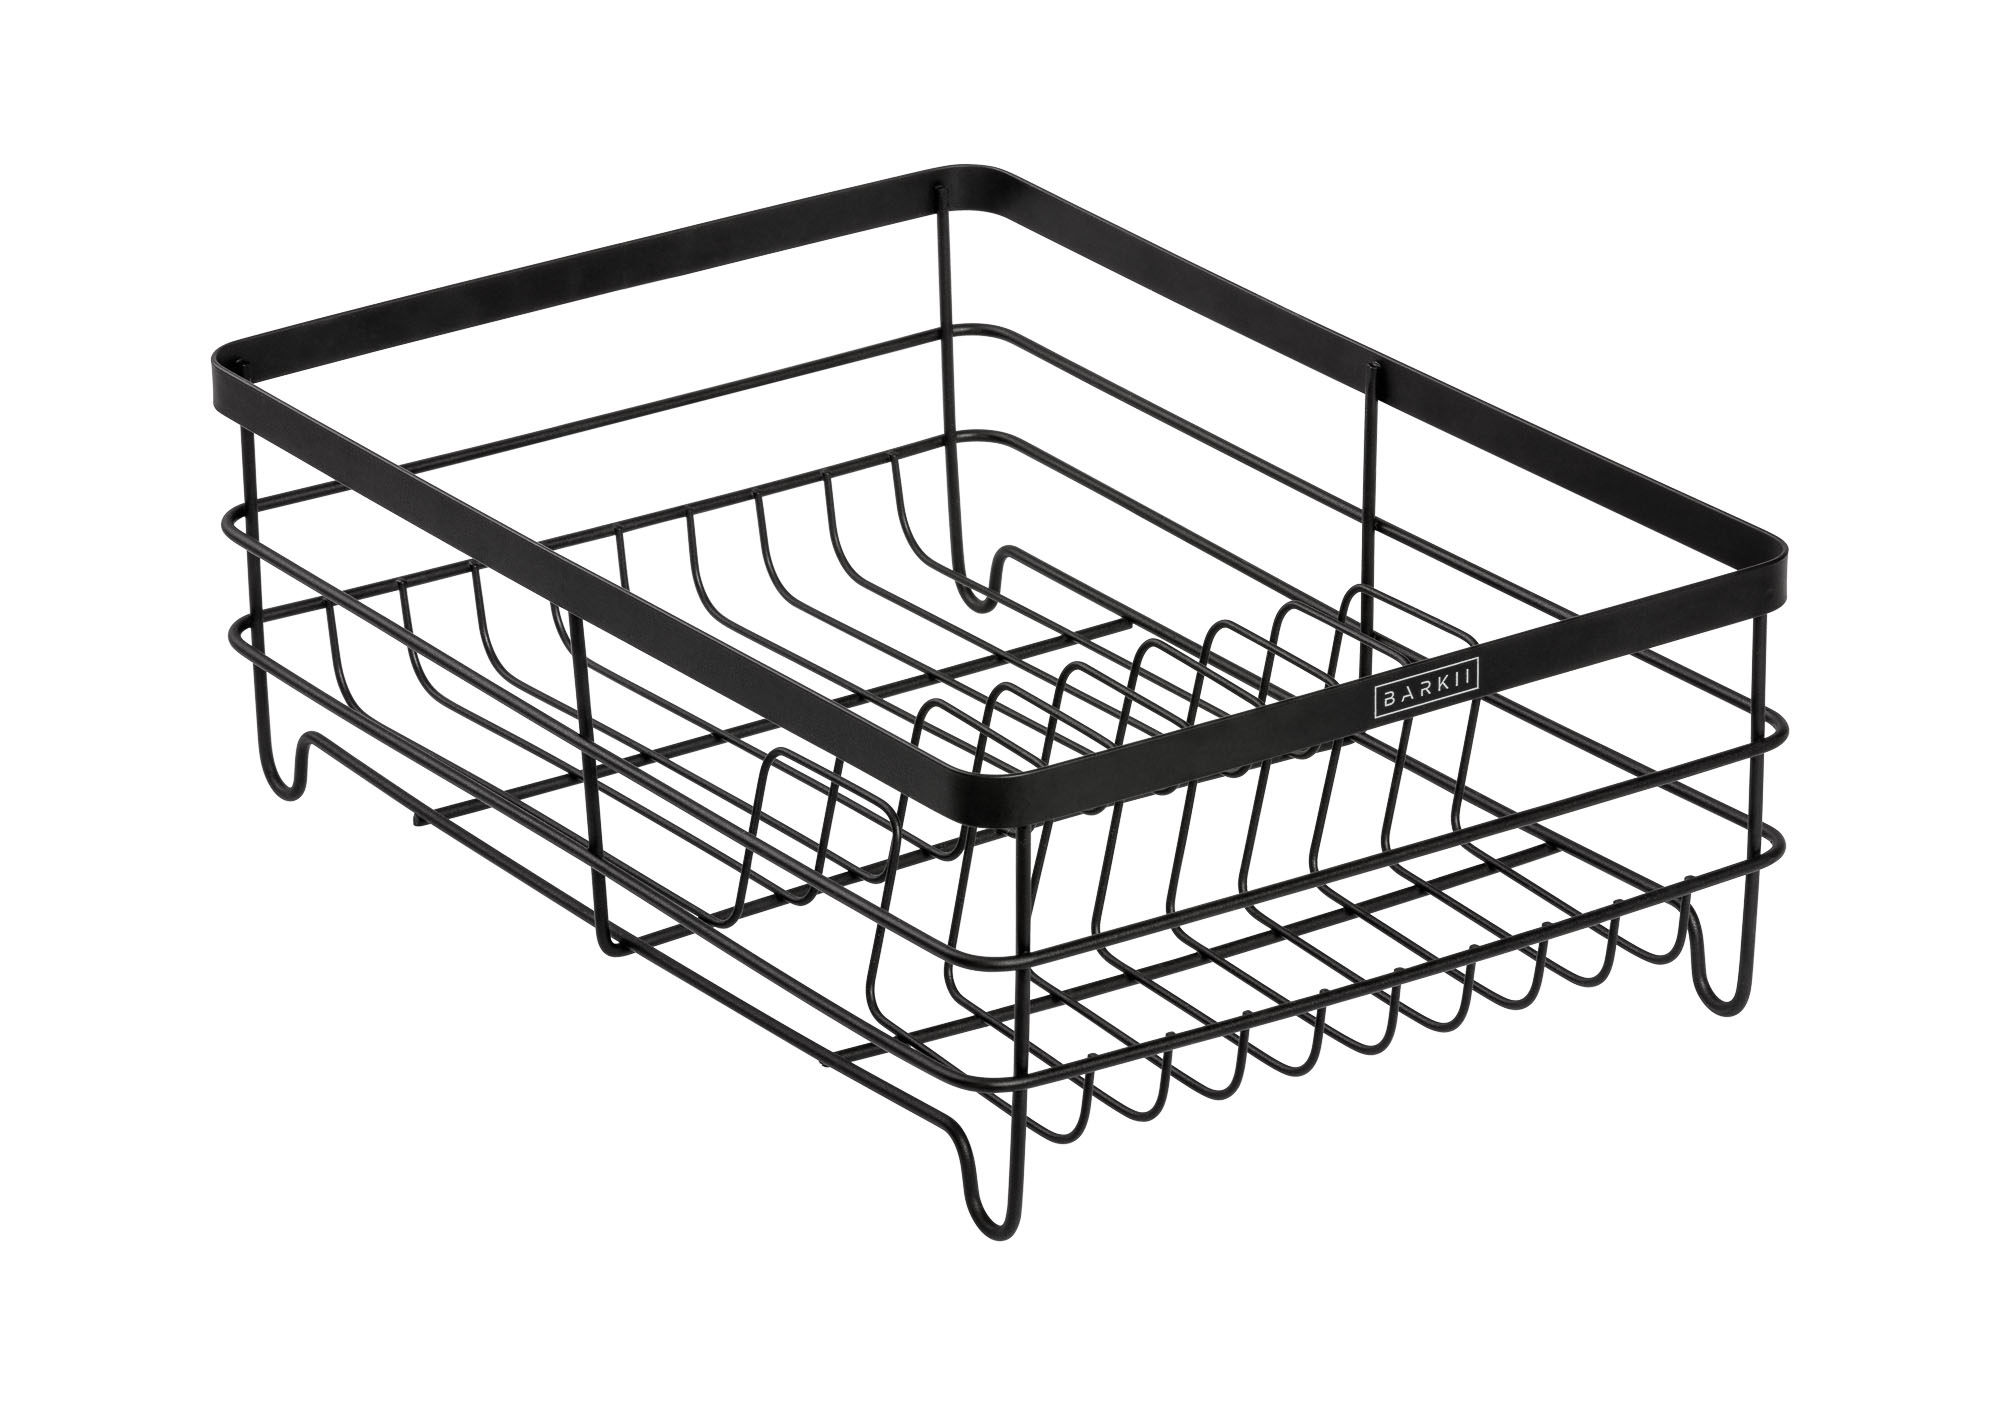 Dish Rack Rack only 45 degrees - sample of product photo for Amazon